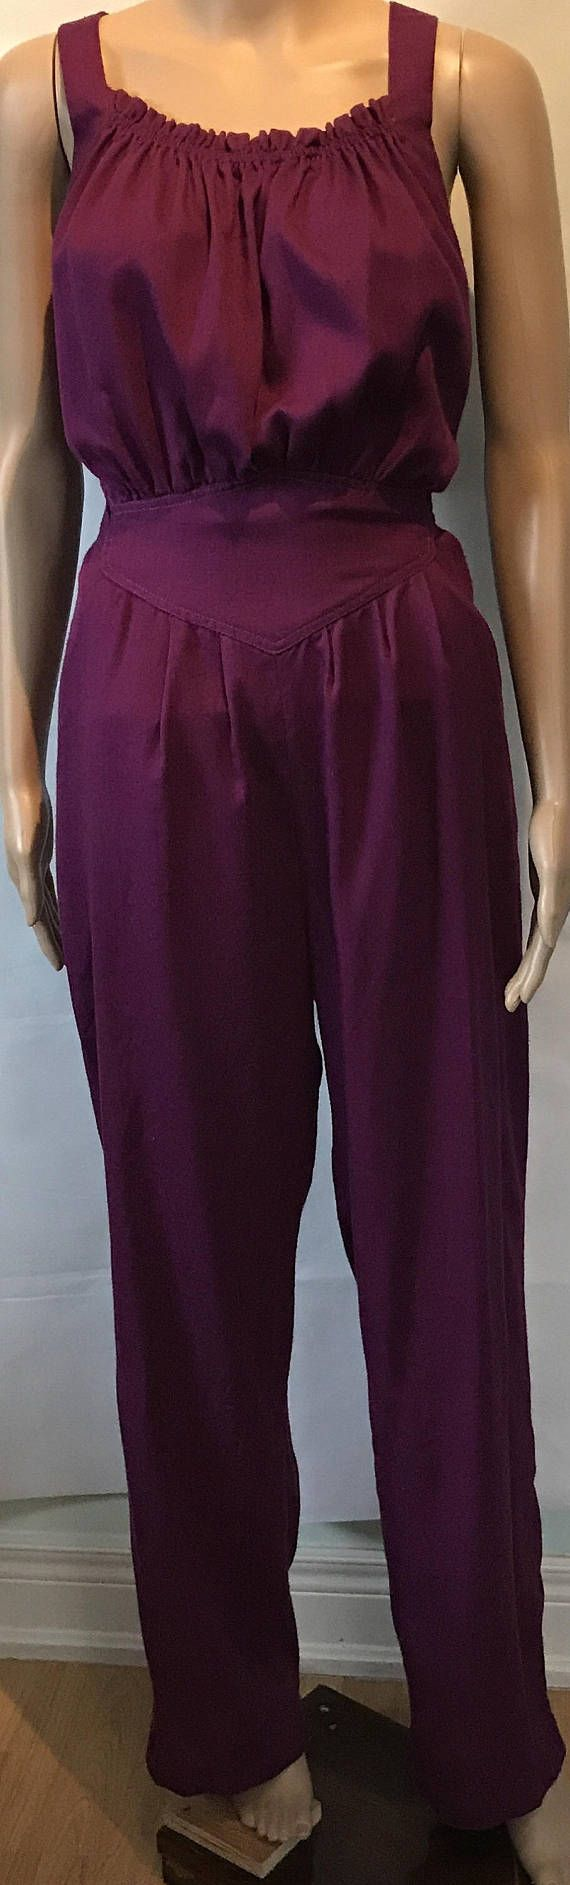 1980's Retro Ladies One Piece Purple Romper Play Suit